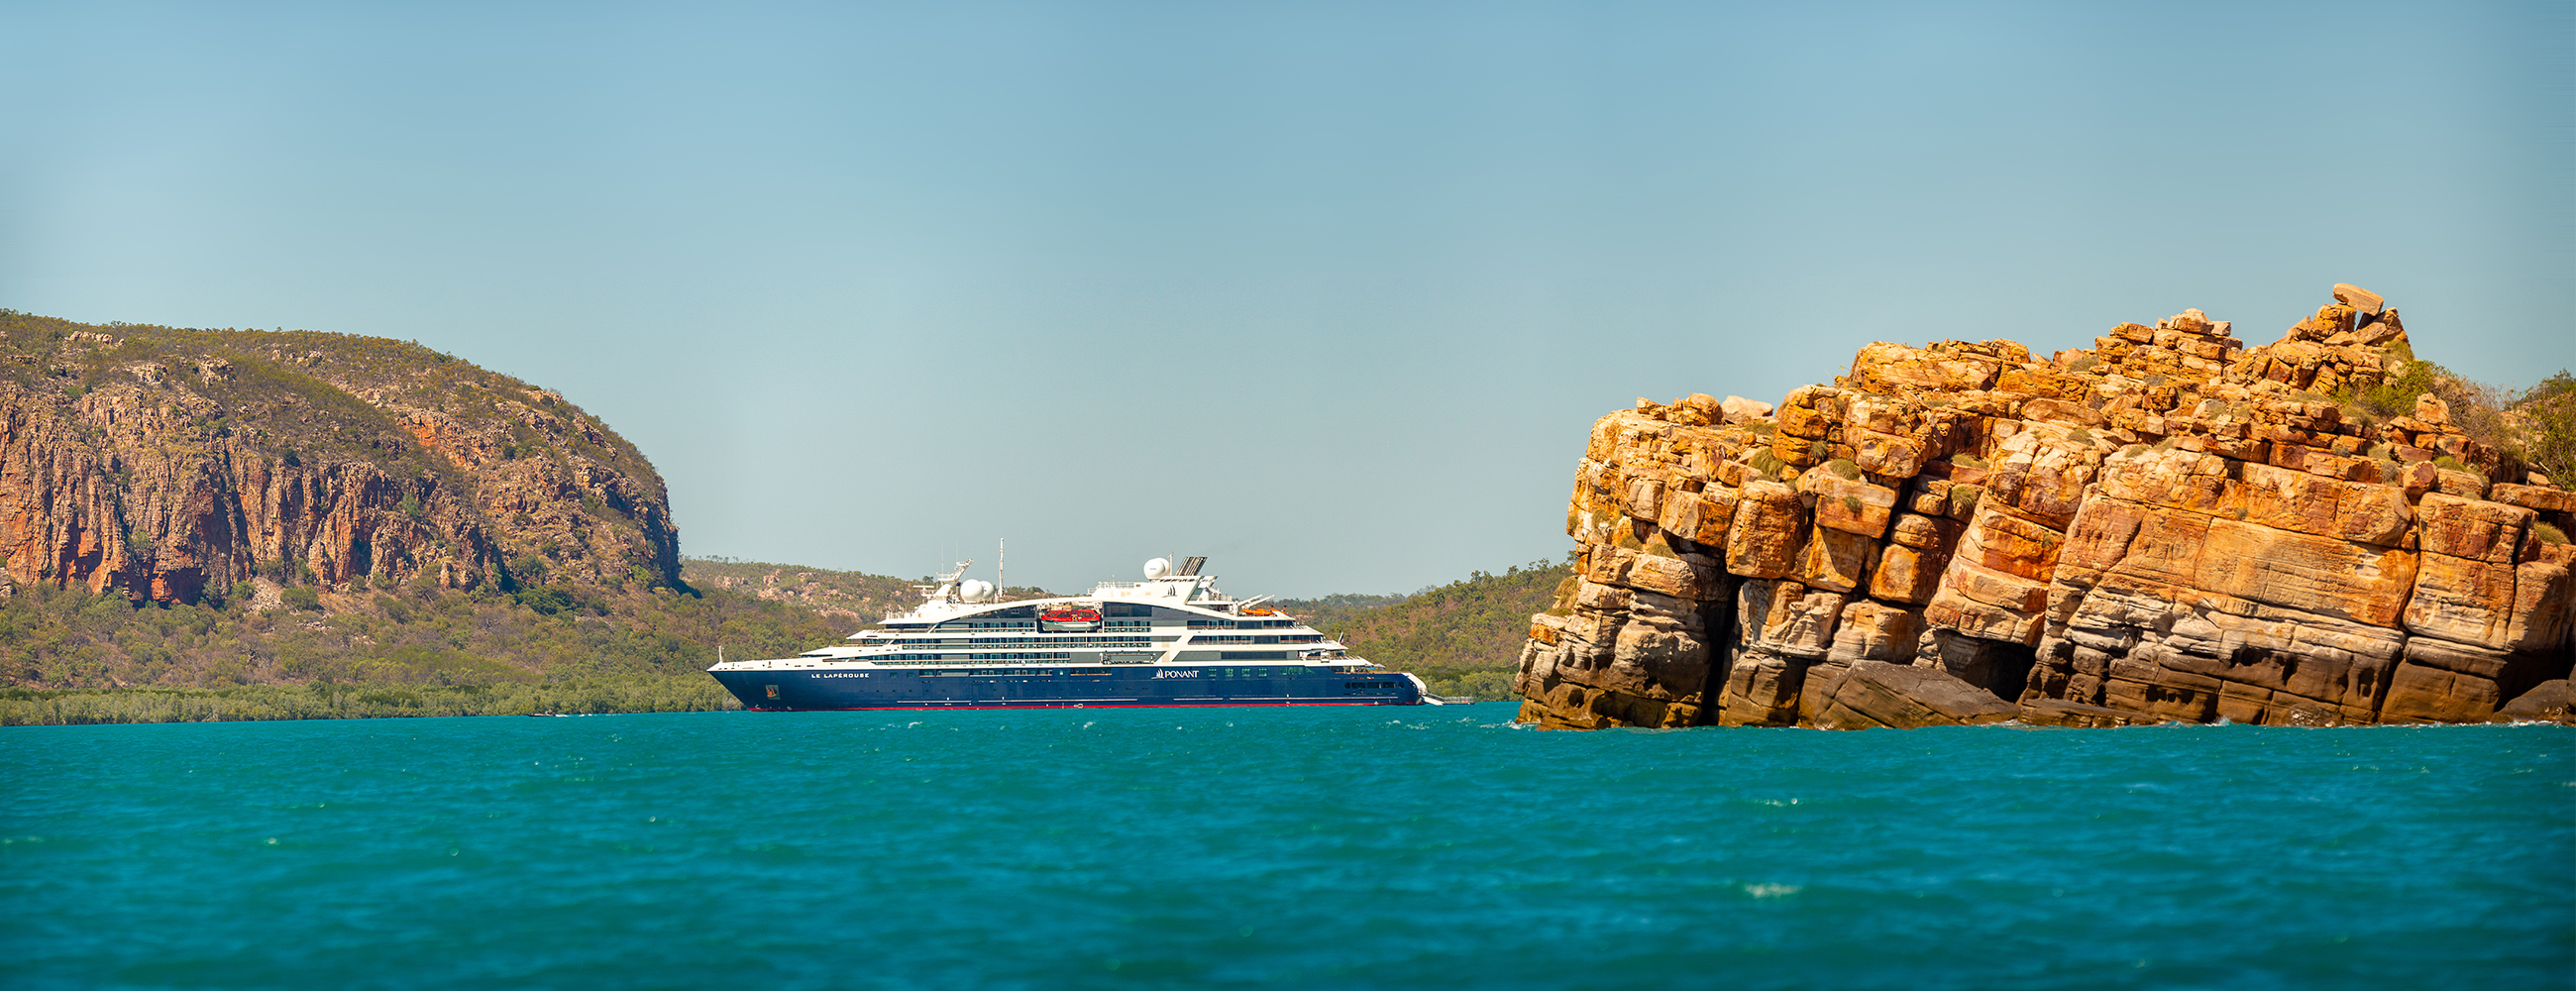 HERO PONANT U1A9099 Pano Edit R120719 Broome Darwin Kimberley Emblématique C Ponant Nick Rains